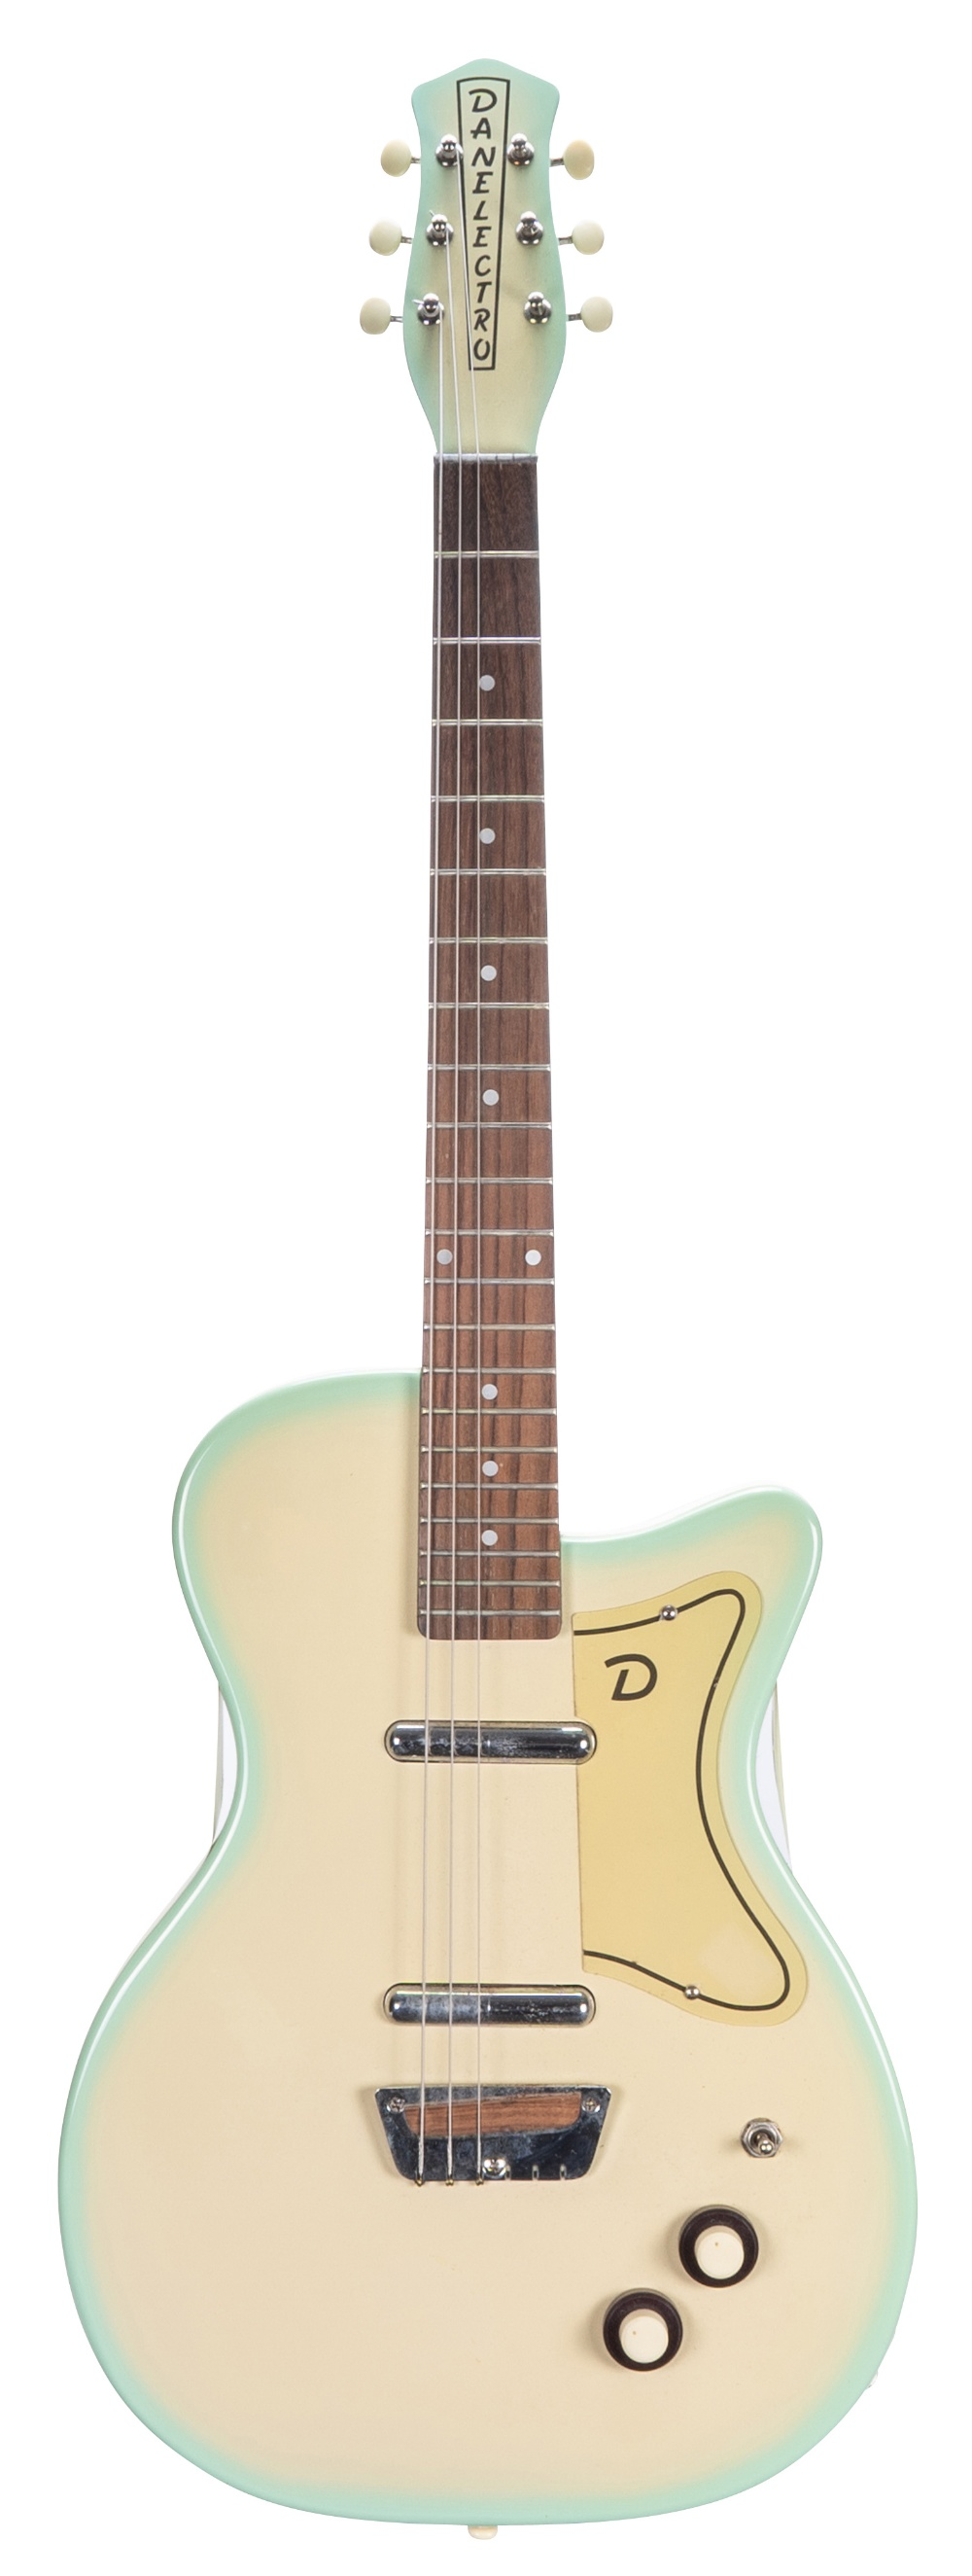 1990s Danelectro '56 electric guitar, made in Korea; Finish: surf green burst, minor dings, side